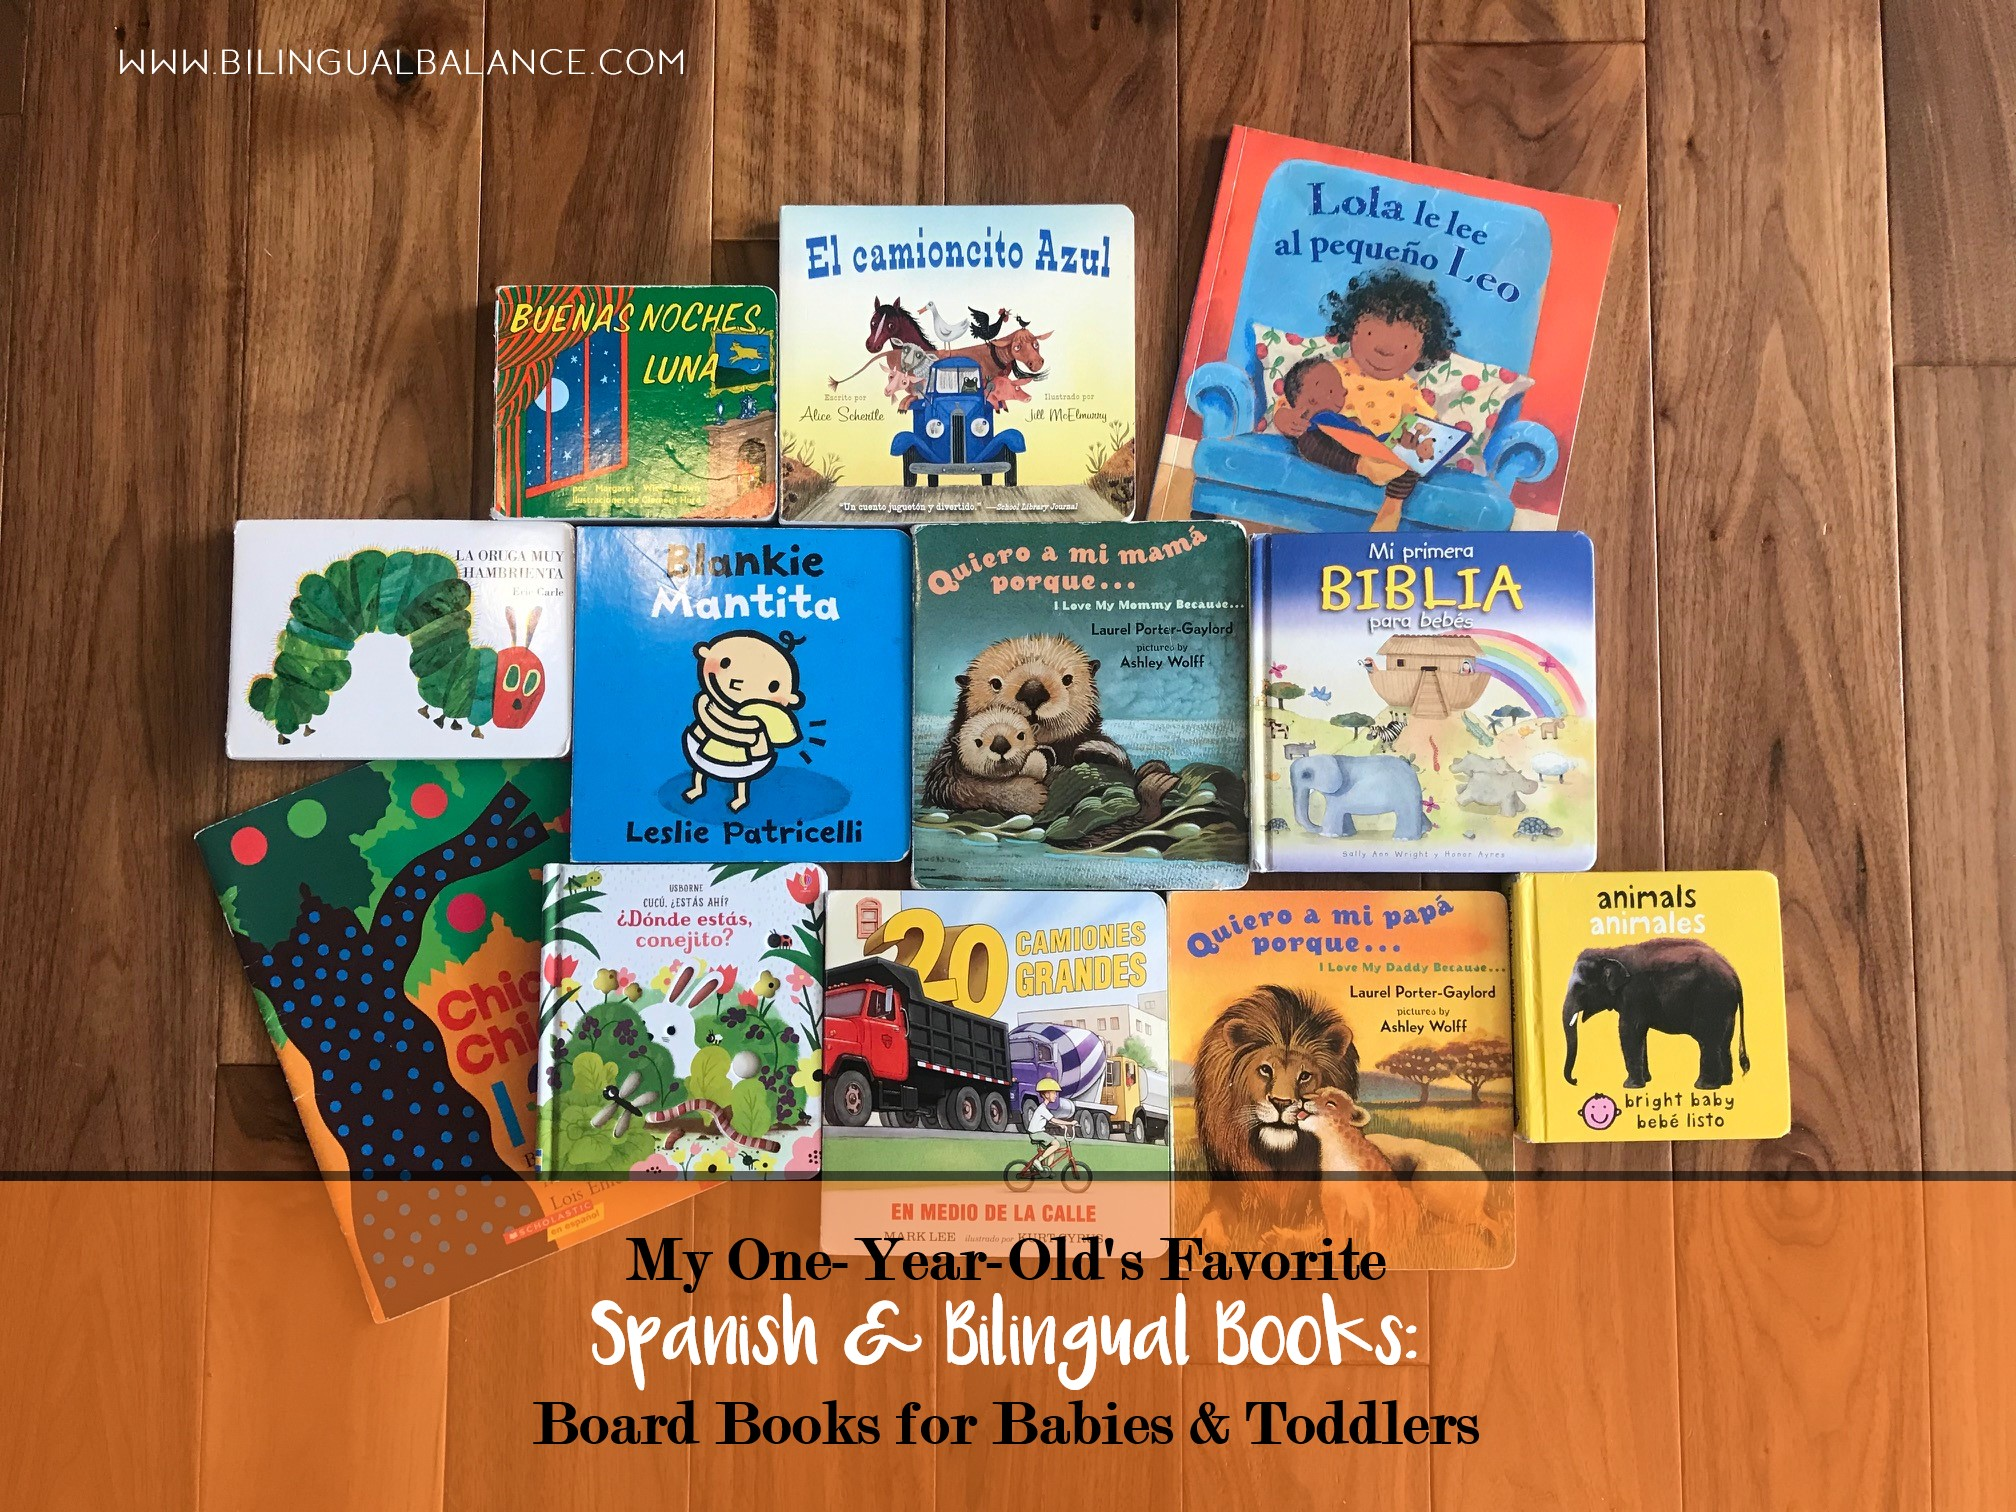 My 1-Year-Old's Favorite Spanish and Bilingual Books: Best Board Books for Babies and Toddlers